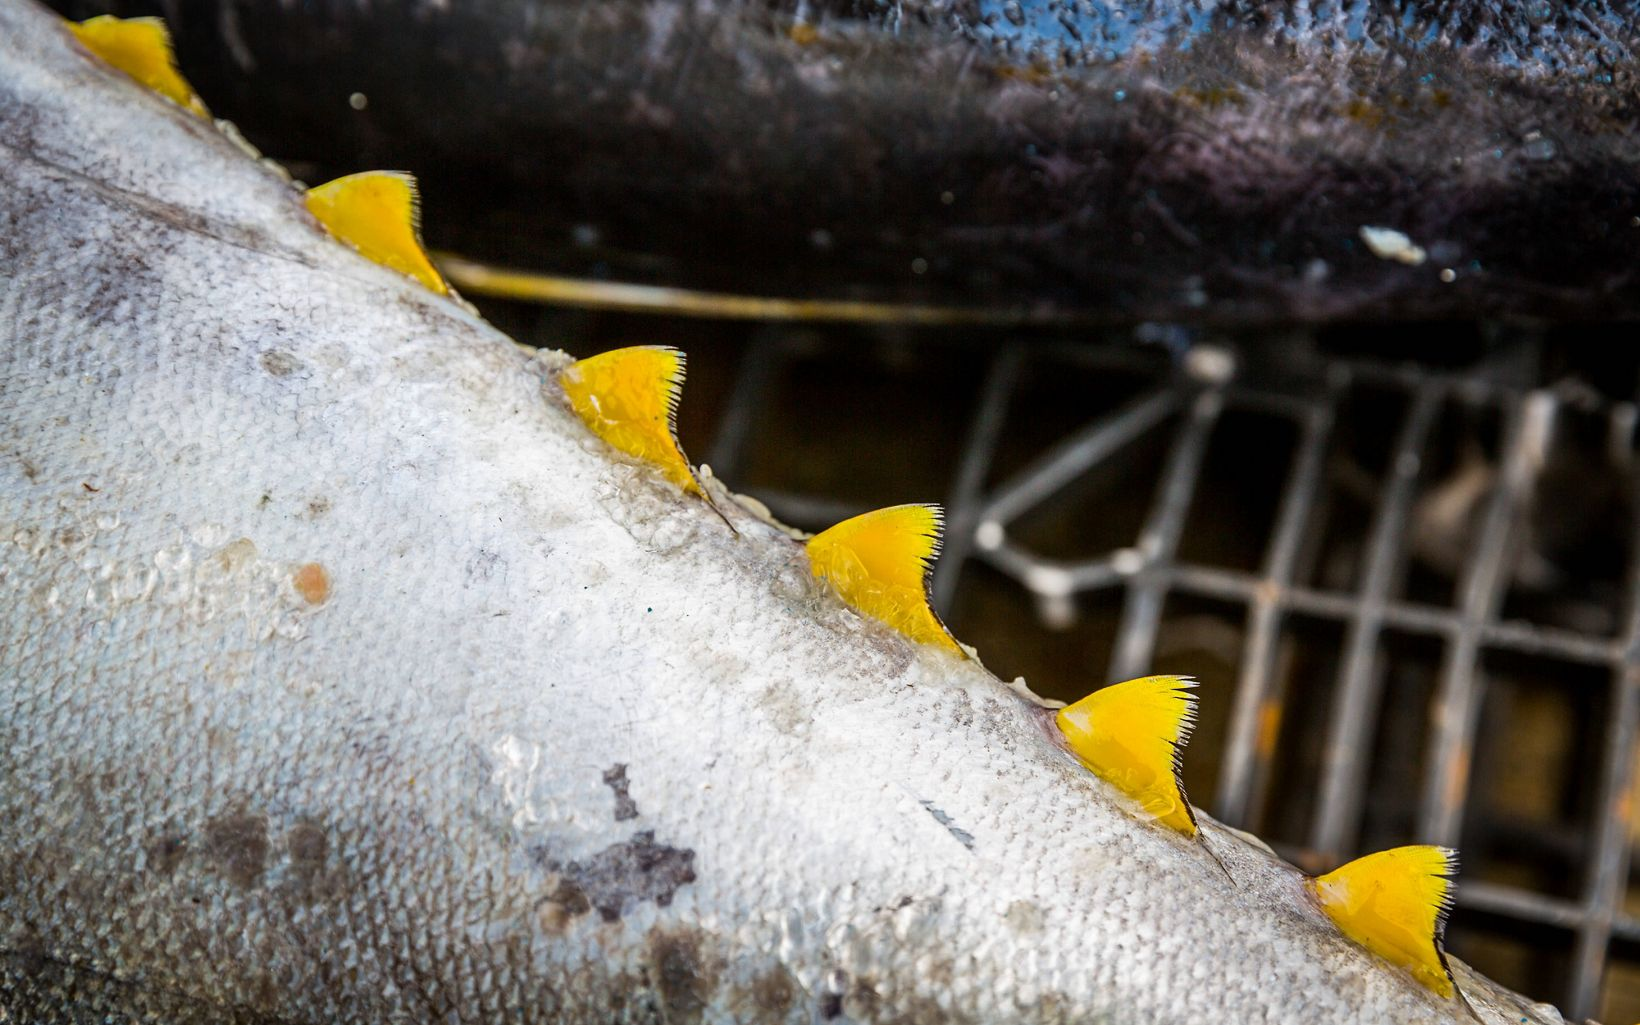 closeup of a yellowfin tuna's spines